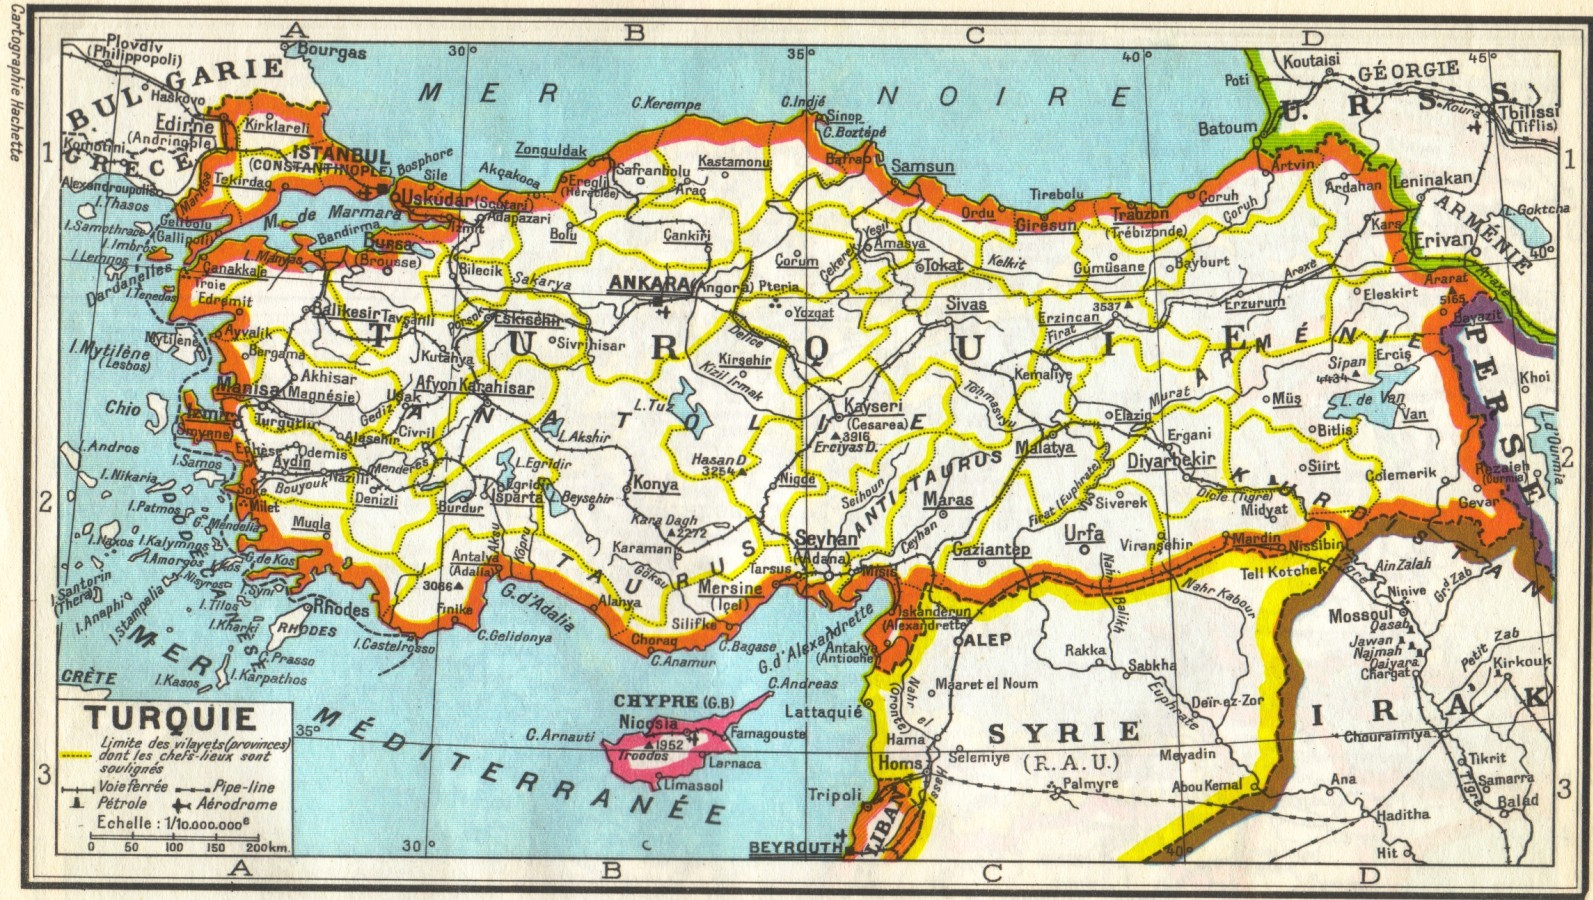 Trains of Turkey - Maps / Maps browse